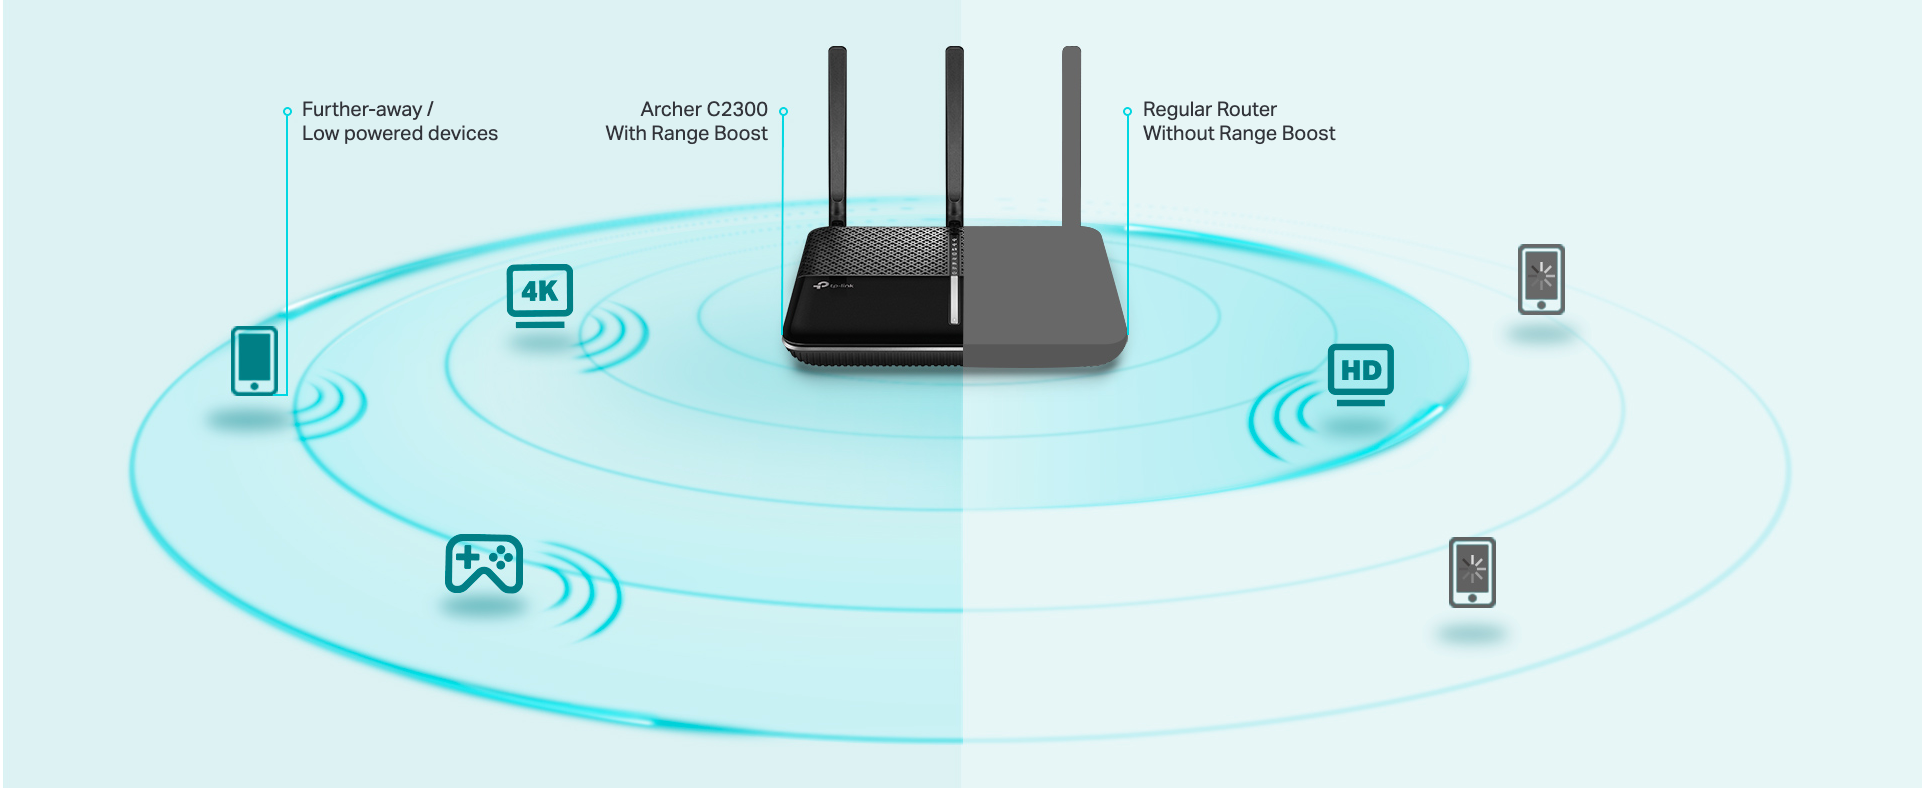 RangeBoost for Far-Reaching WiFi RangeBoost amplifies the router's ability to detect and receive WiFi signal from devices that are located farther away. Stream, game and enjoy what you love anywhere in your home, from your favourite spot on the couch to the comfort of your bed.